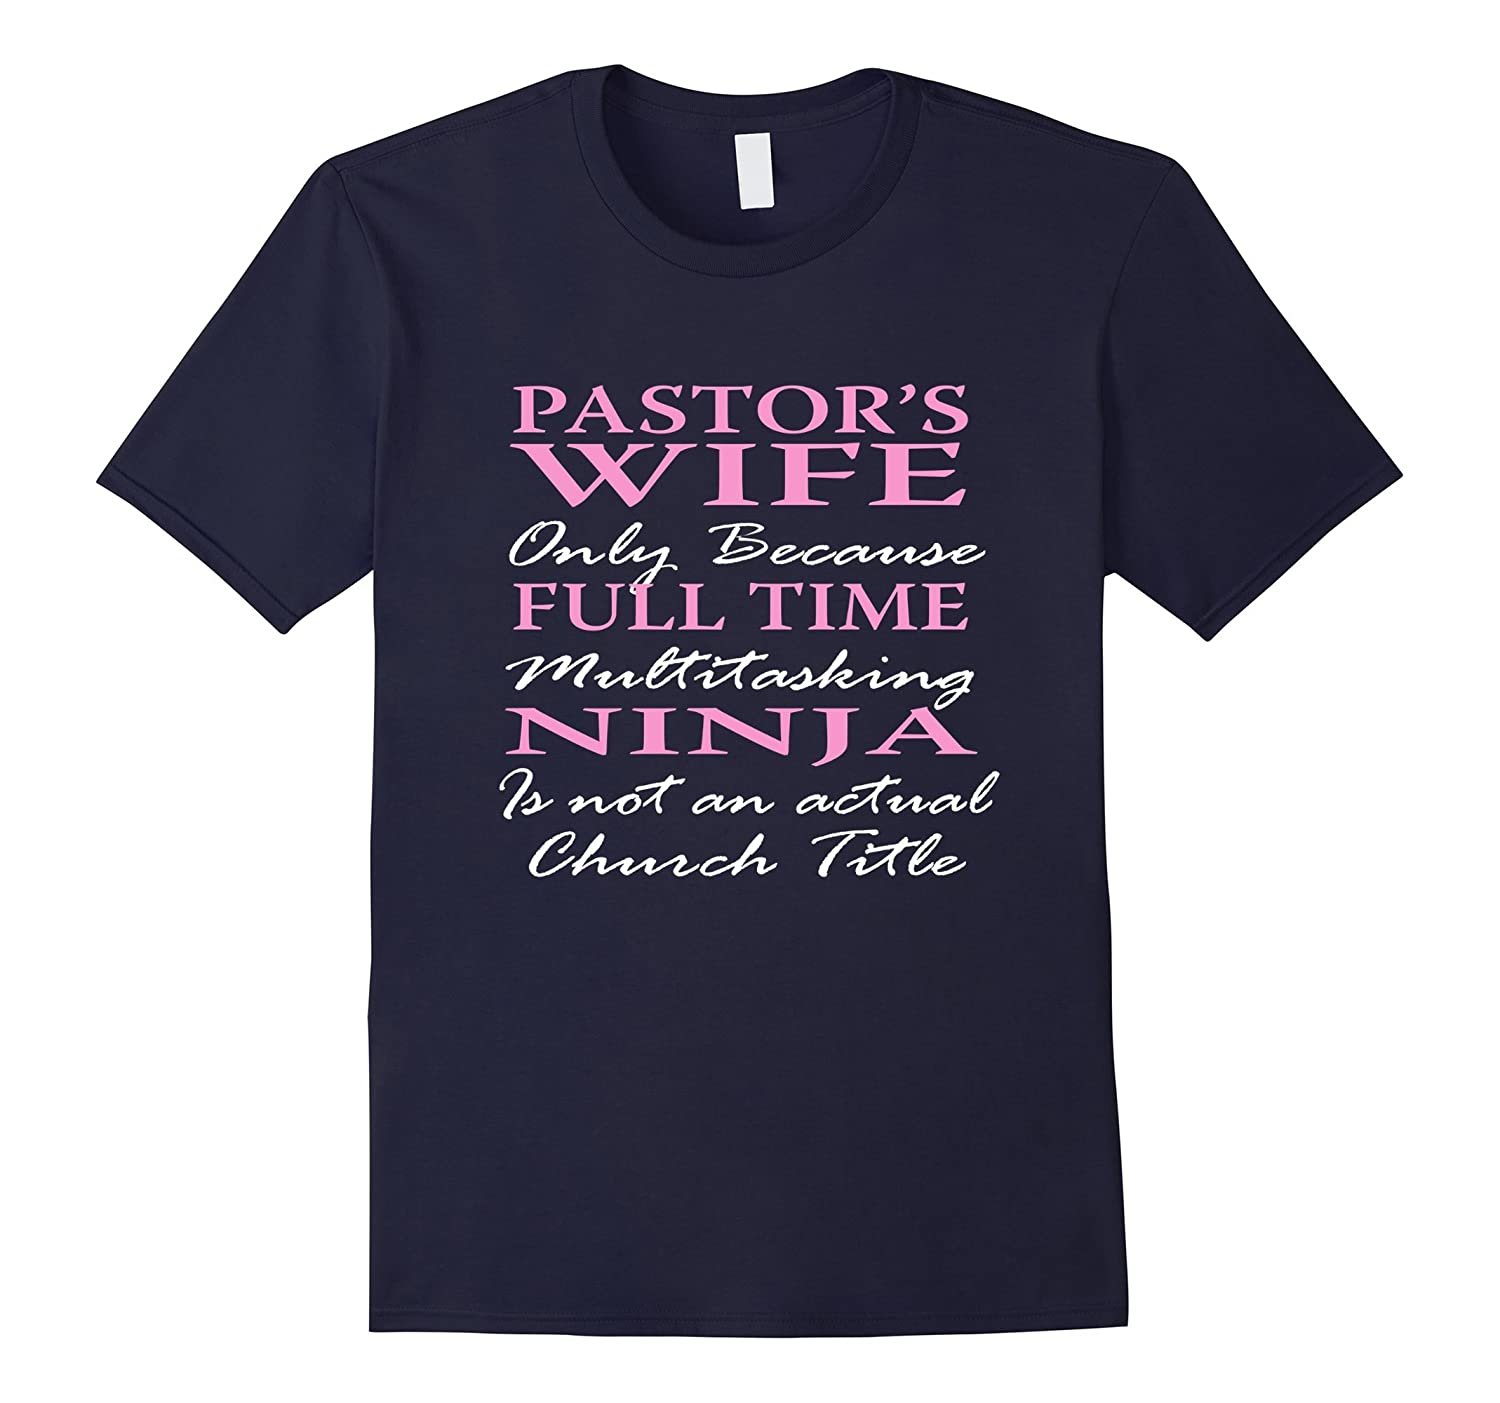 Funny Pastor's Wife T Shirt Gift